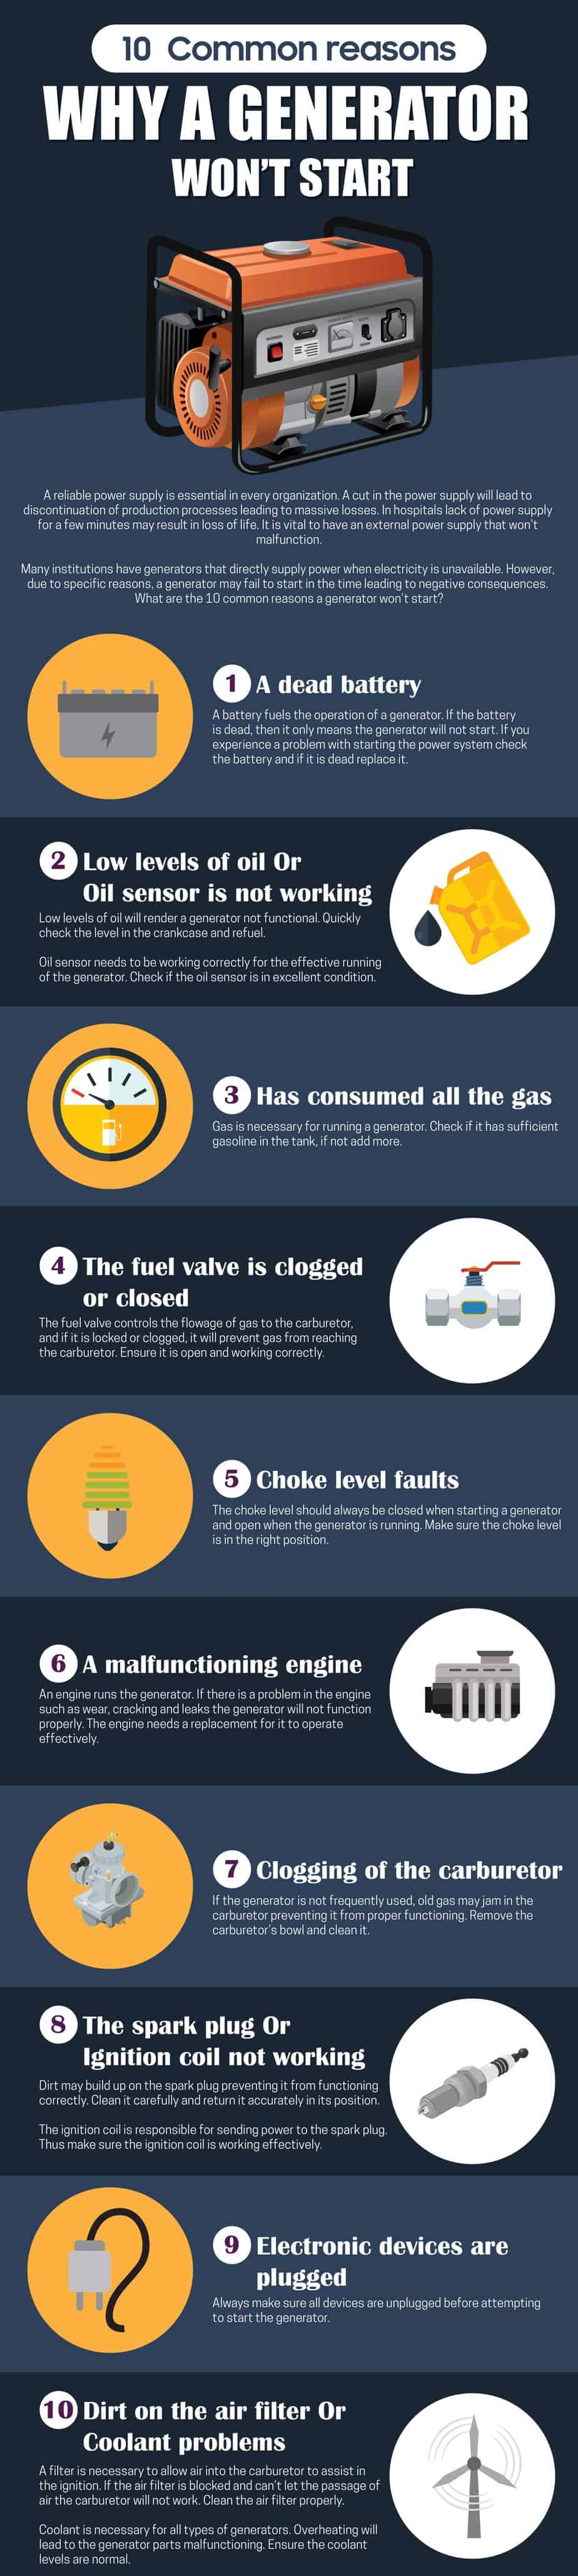 generators Problems infographic